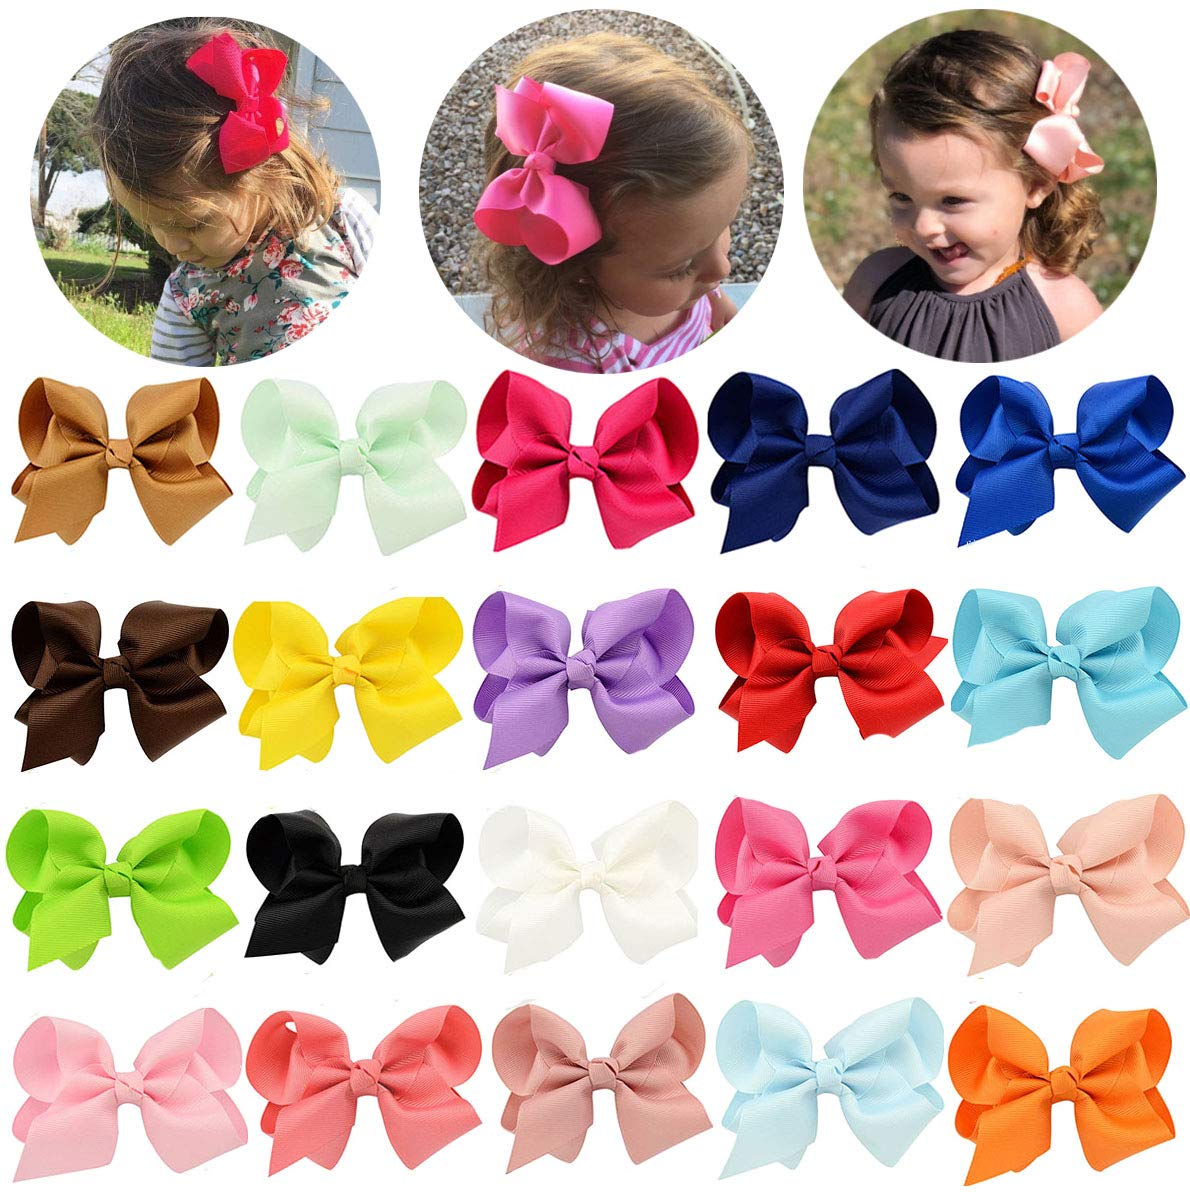 4.5'' Baby Girl Toddler Hair Bows With Alligator Clip Grosgrain Barrettes Accessories For Anfant